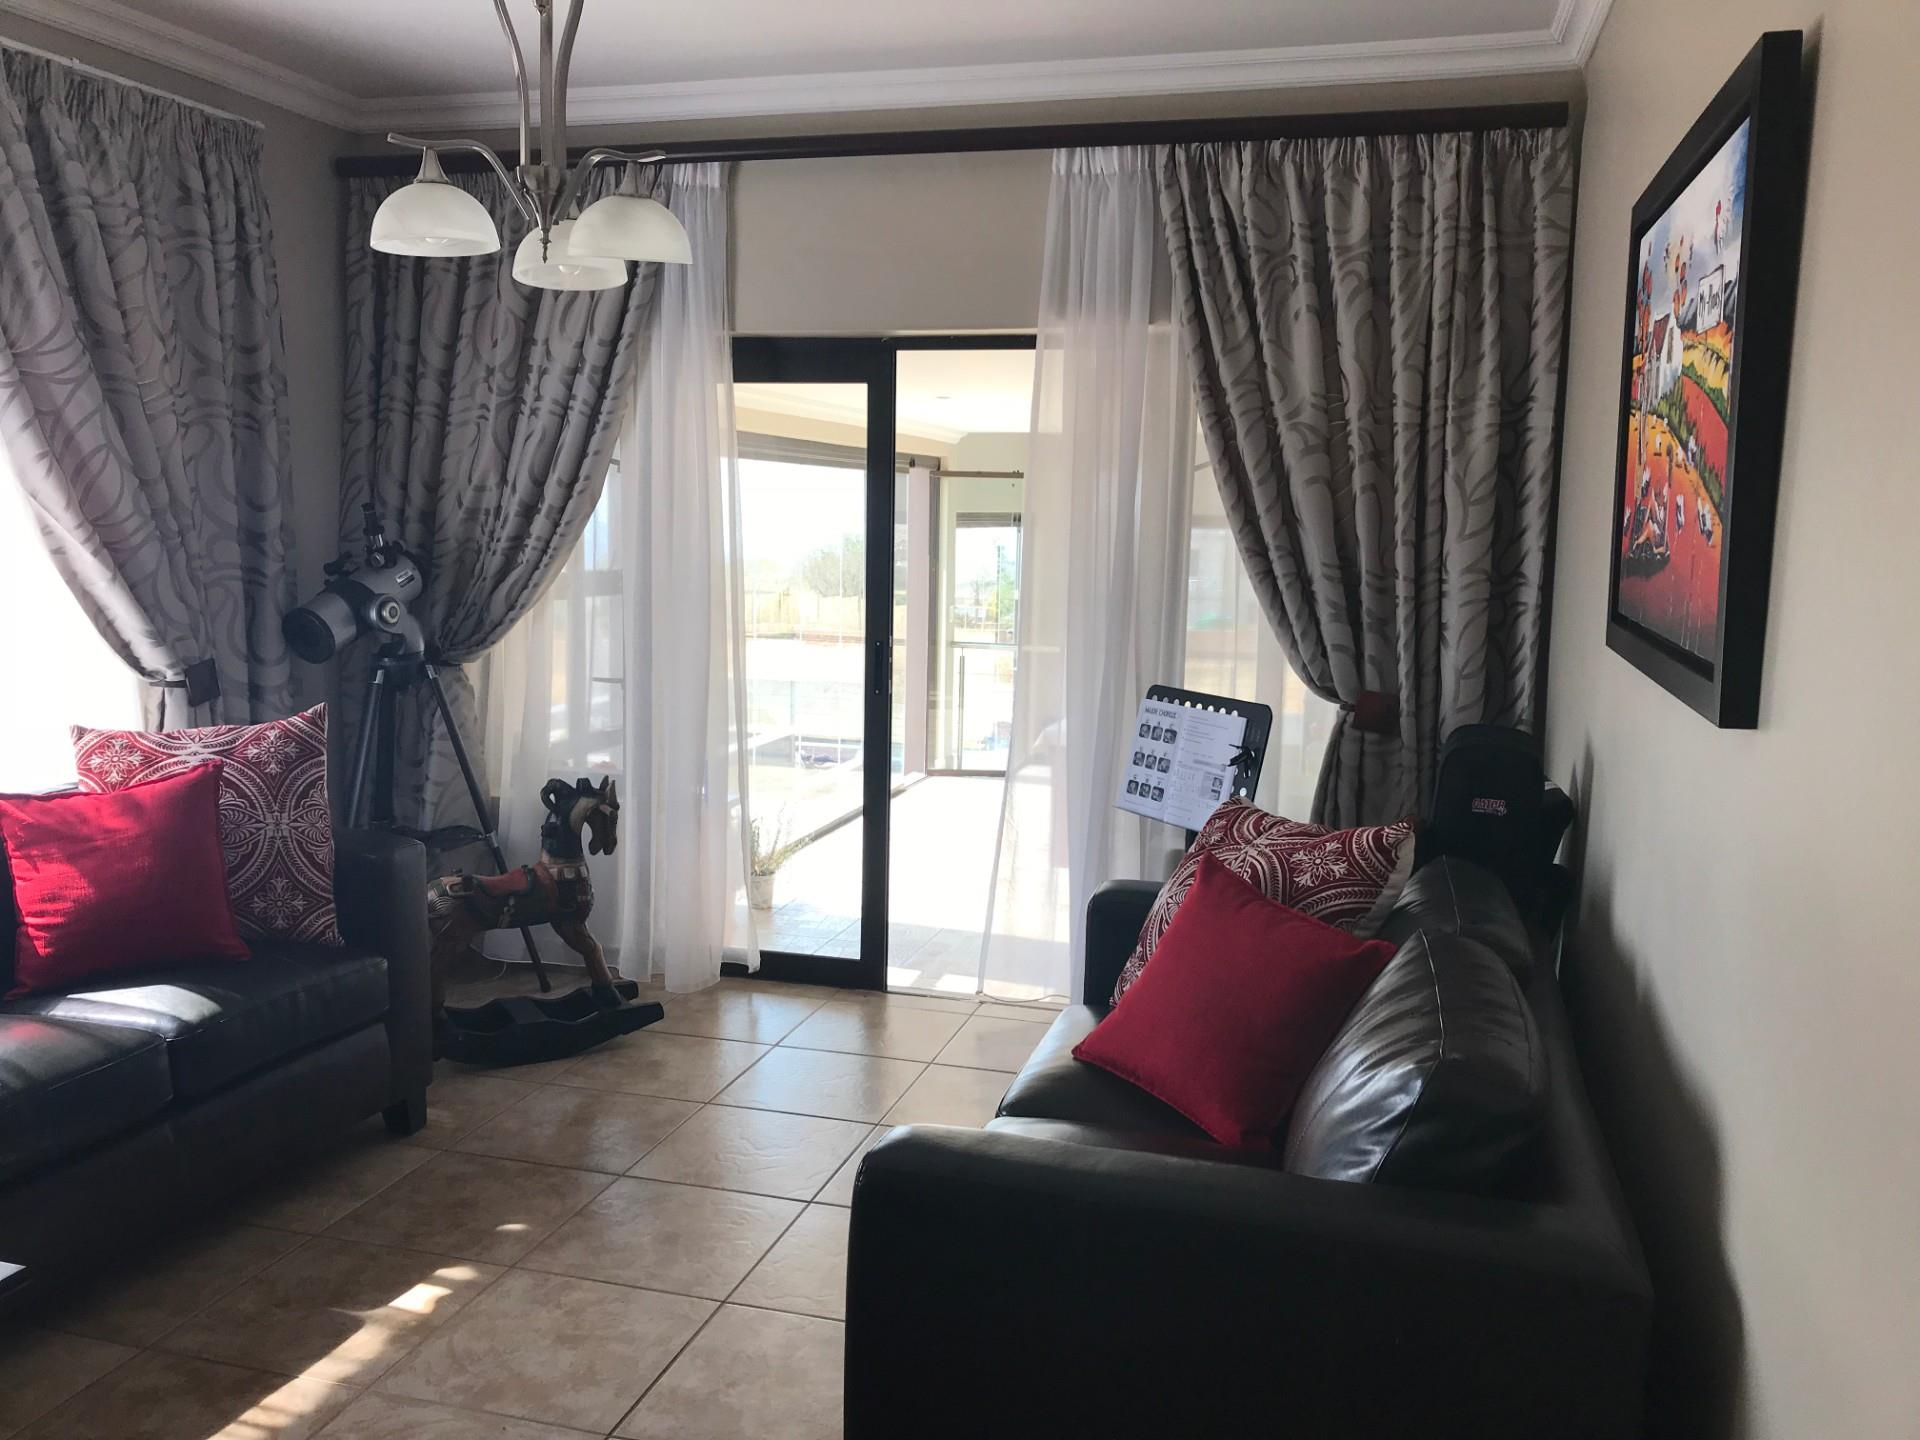 4 Bedroom House For Sale in Verresig Country Estate